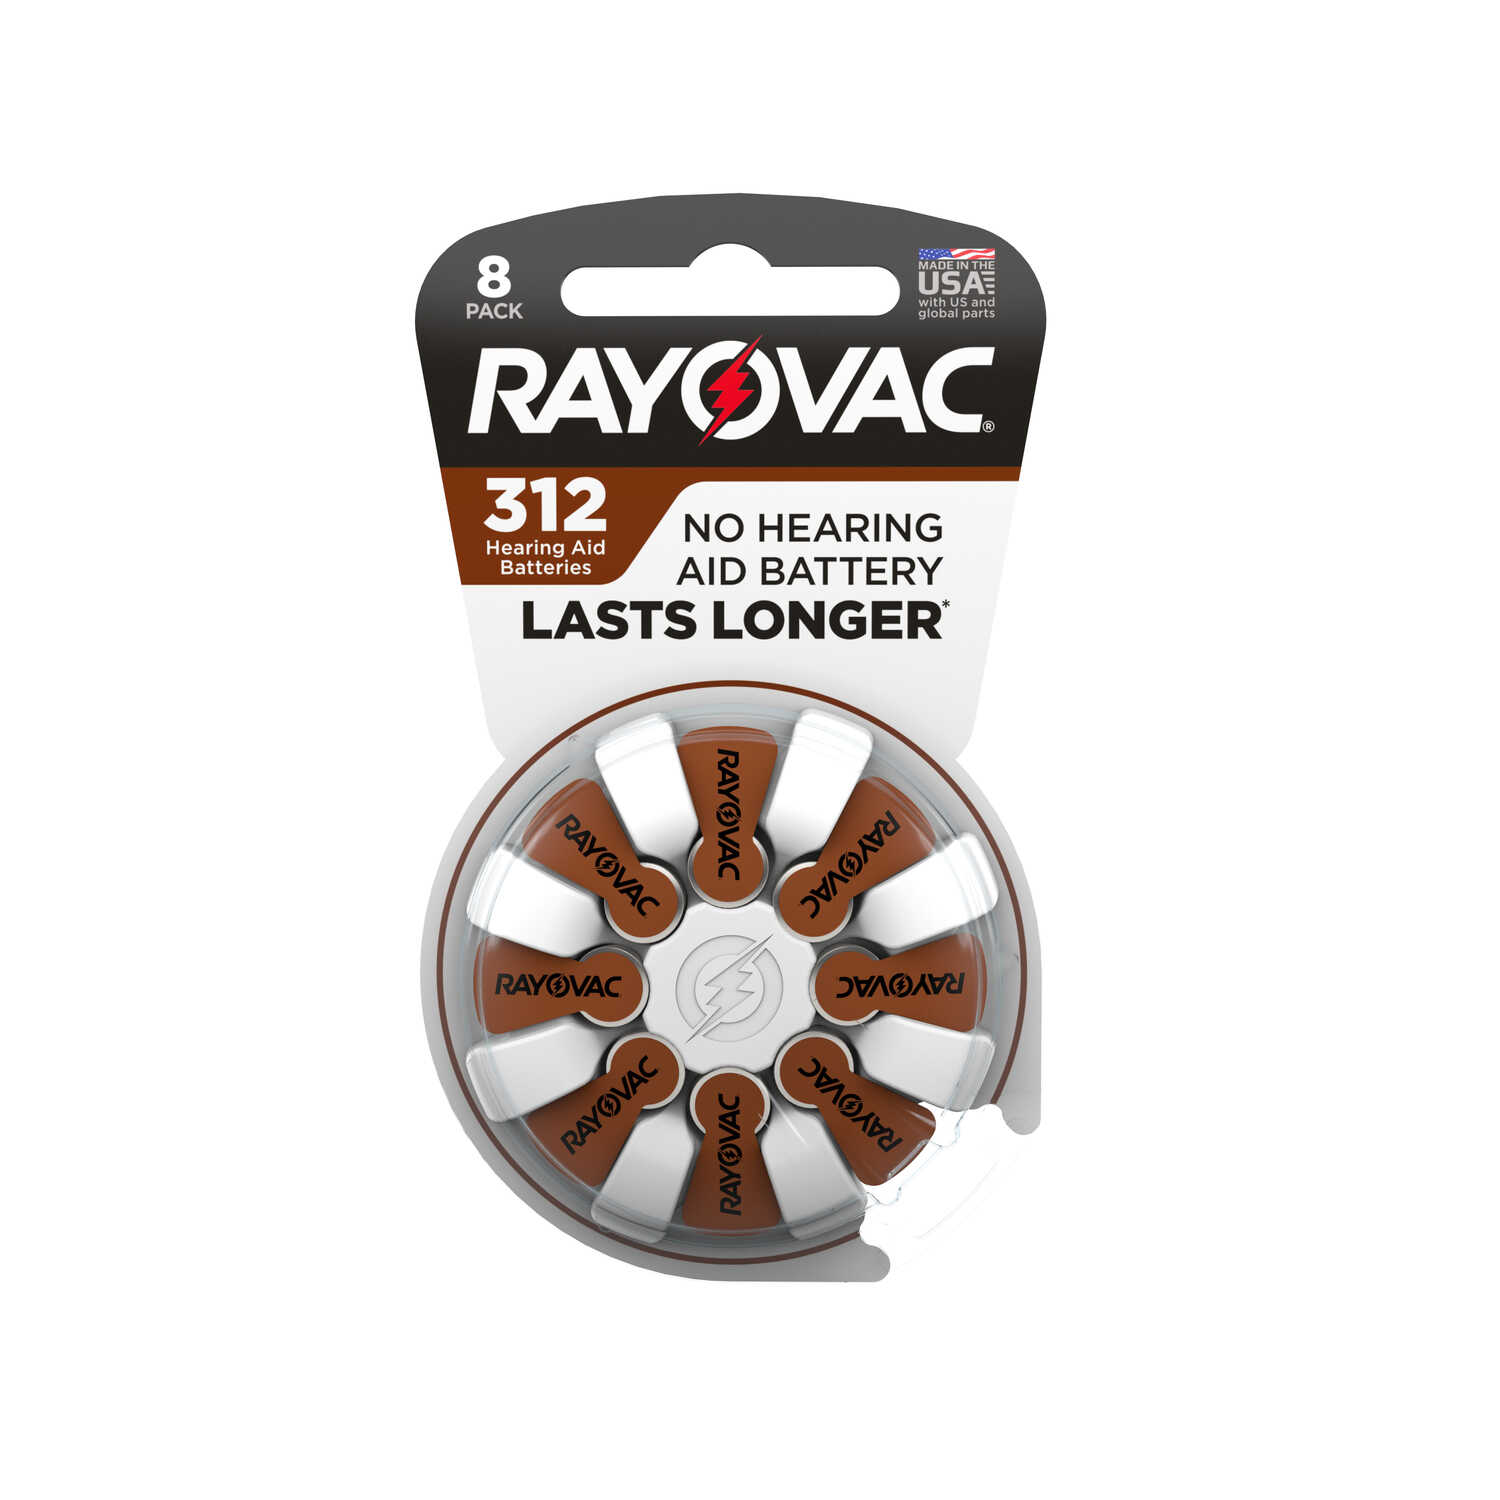 Rayovac  Zinc-Air  312  1.45 volt Hearing Aid Battery  8 pk